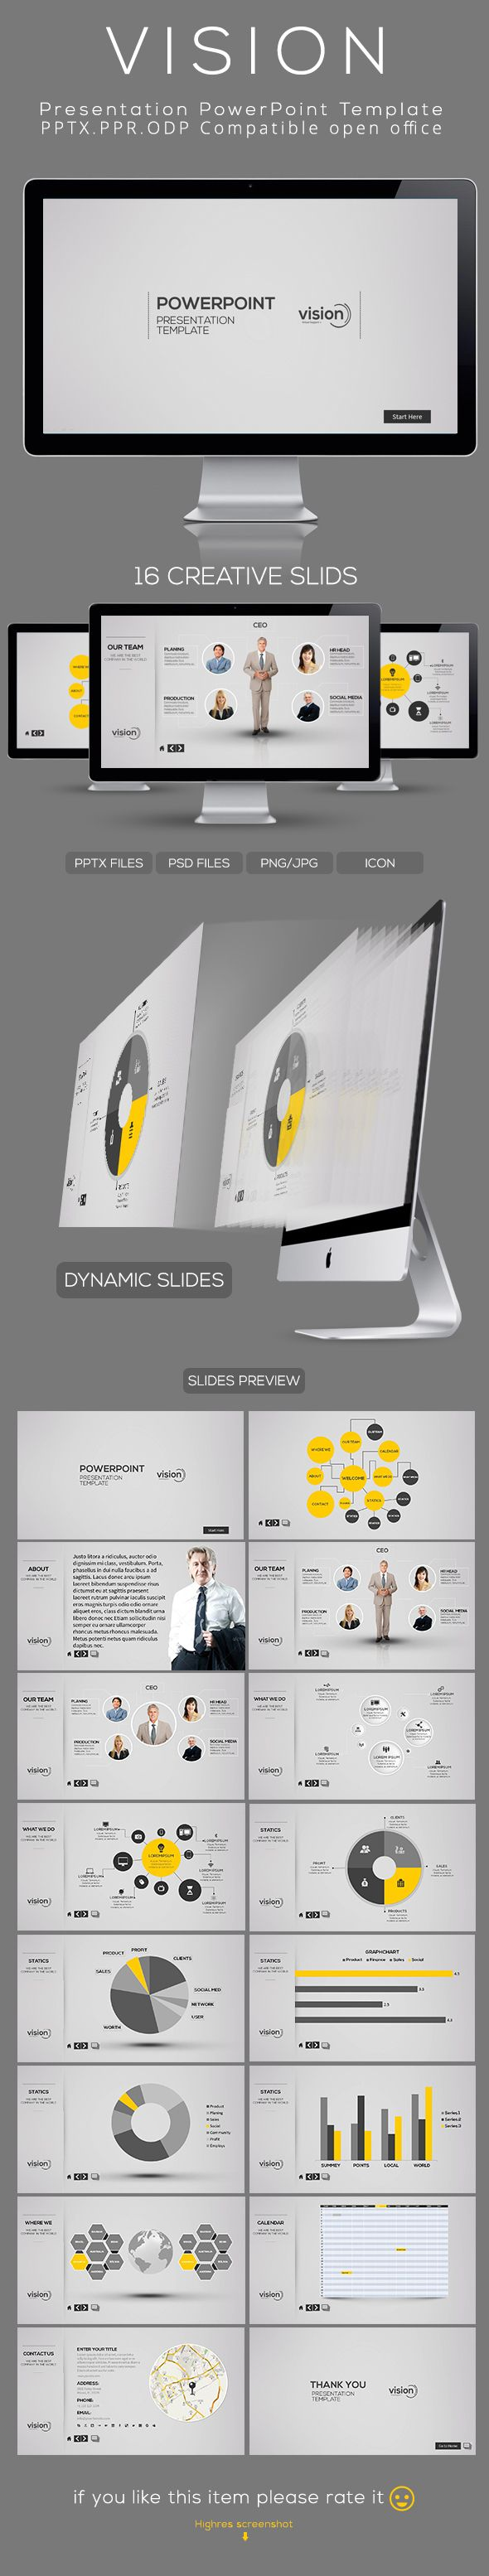 20 best images about ppt on pinterest | cleanses, behance and, Presentation templates